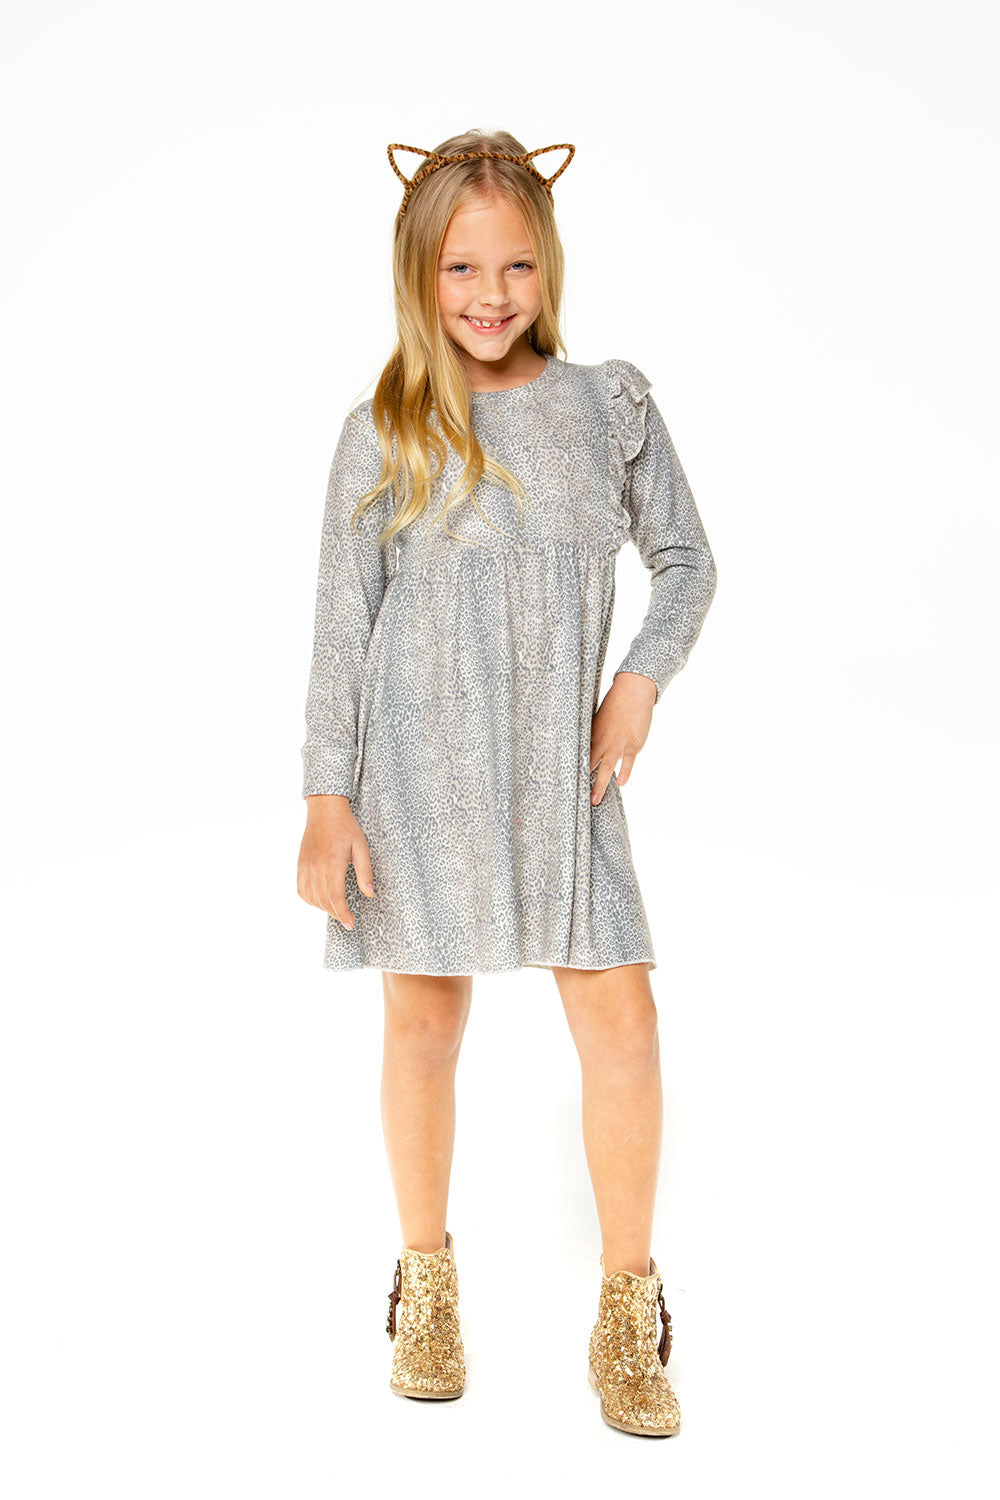 Girls Love Knit Long Sleeve Asymmetrical Ruffle Mini Dress GIRLS chaserbrand4.myshopify.com